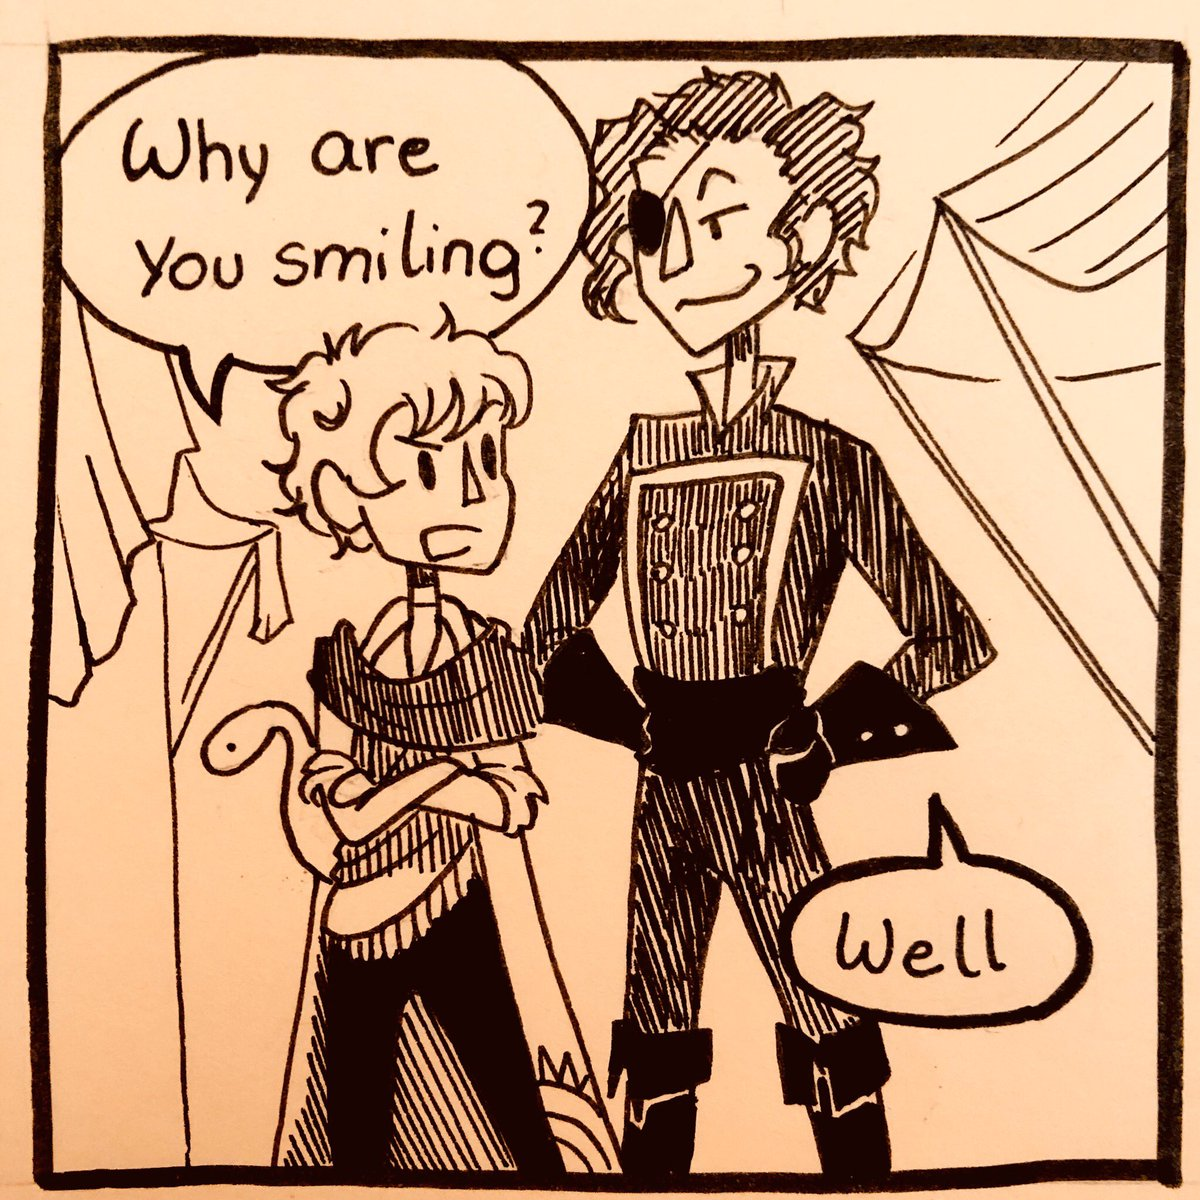 Another stupid The Arcana comic!  have fun!   Never make fun of smol ppl! >:3 #thearcana #thearcanagame #thearcanafanart #fanart #thearcanaasra #thearcanajulian #thearcanailya #juliandevorak #ilyadevorak  #sketchbook #comic #comicstrippic.twitter.com/pg8tyVuyqI